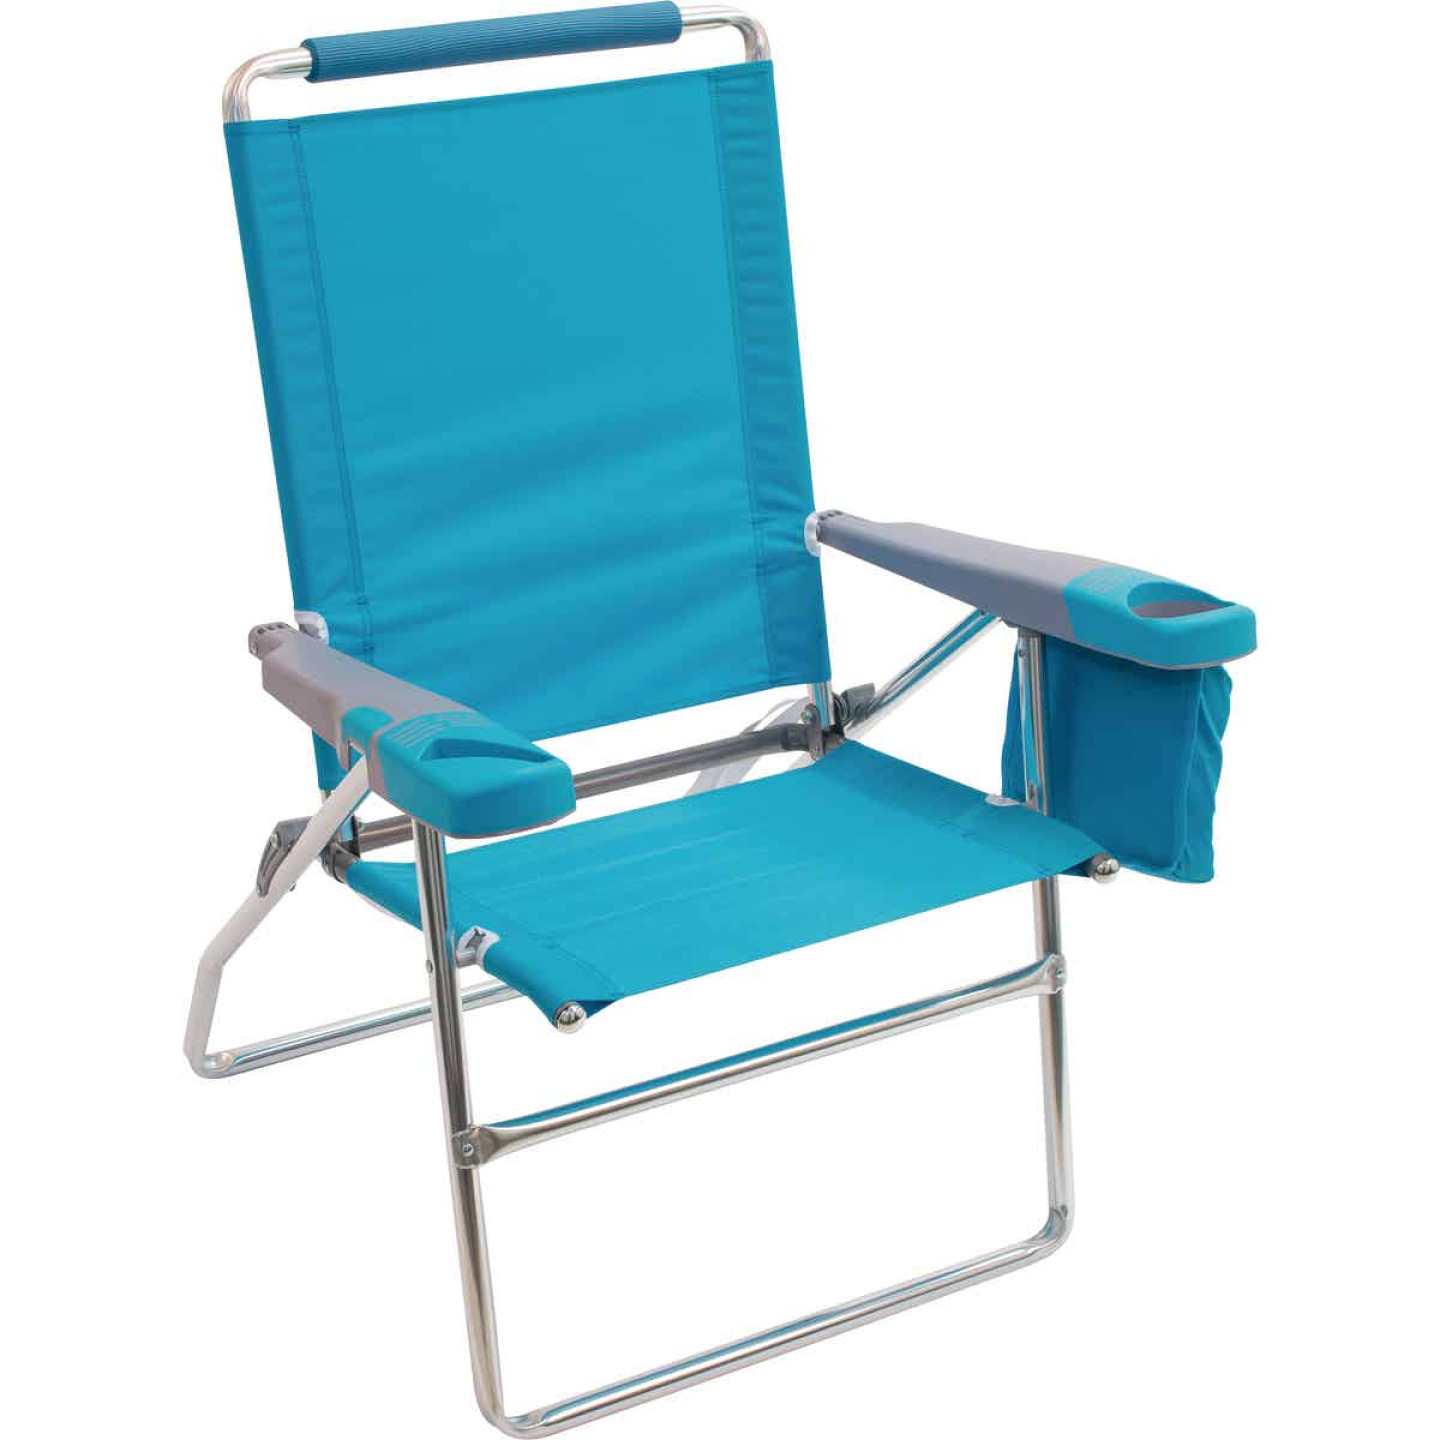 Rio Brands 4-Position Aluminum Folding Beach Chair with Cooler Image 1